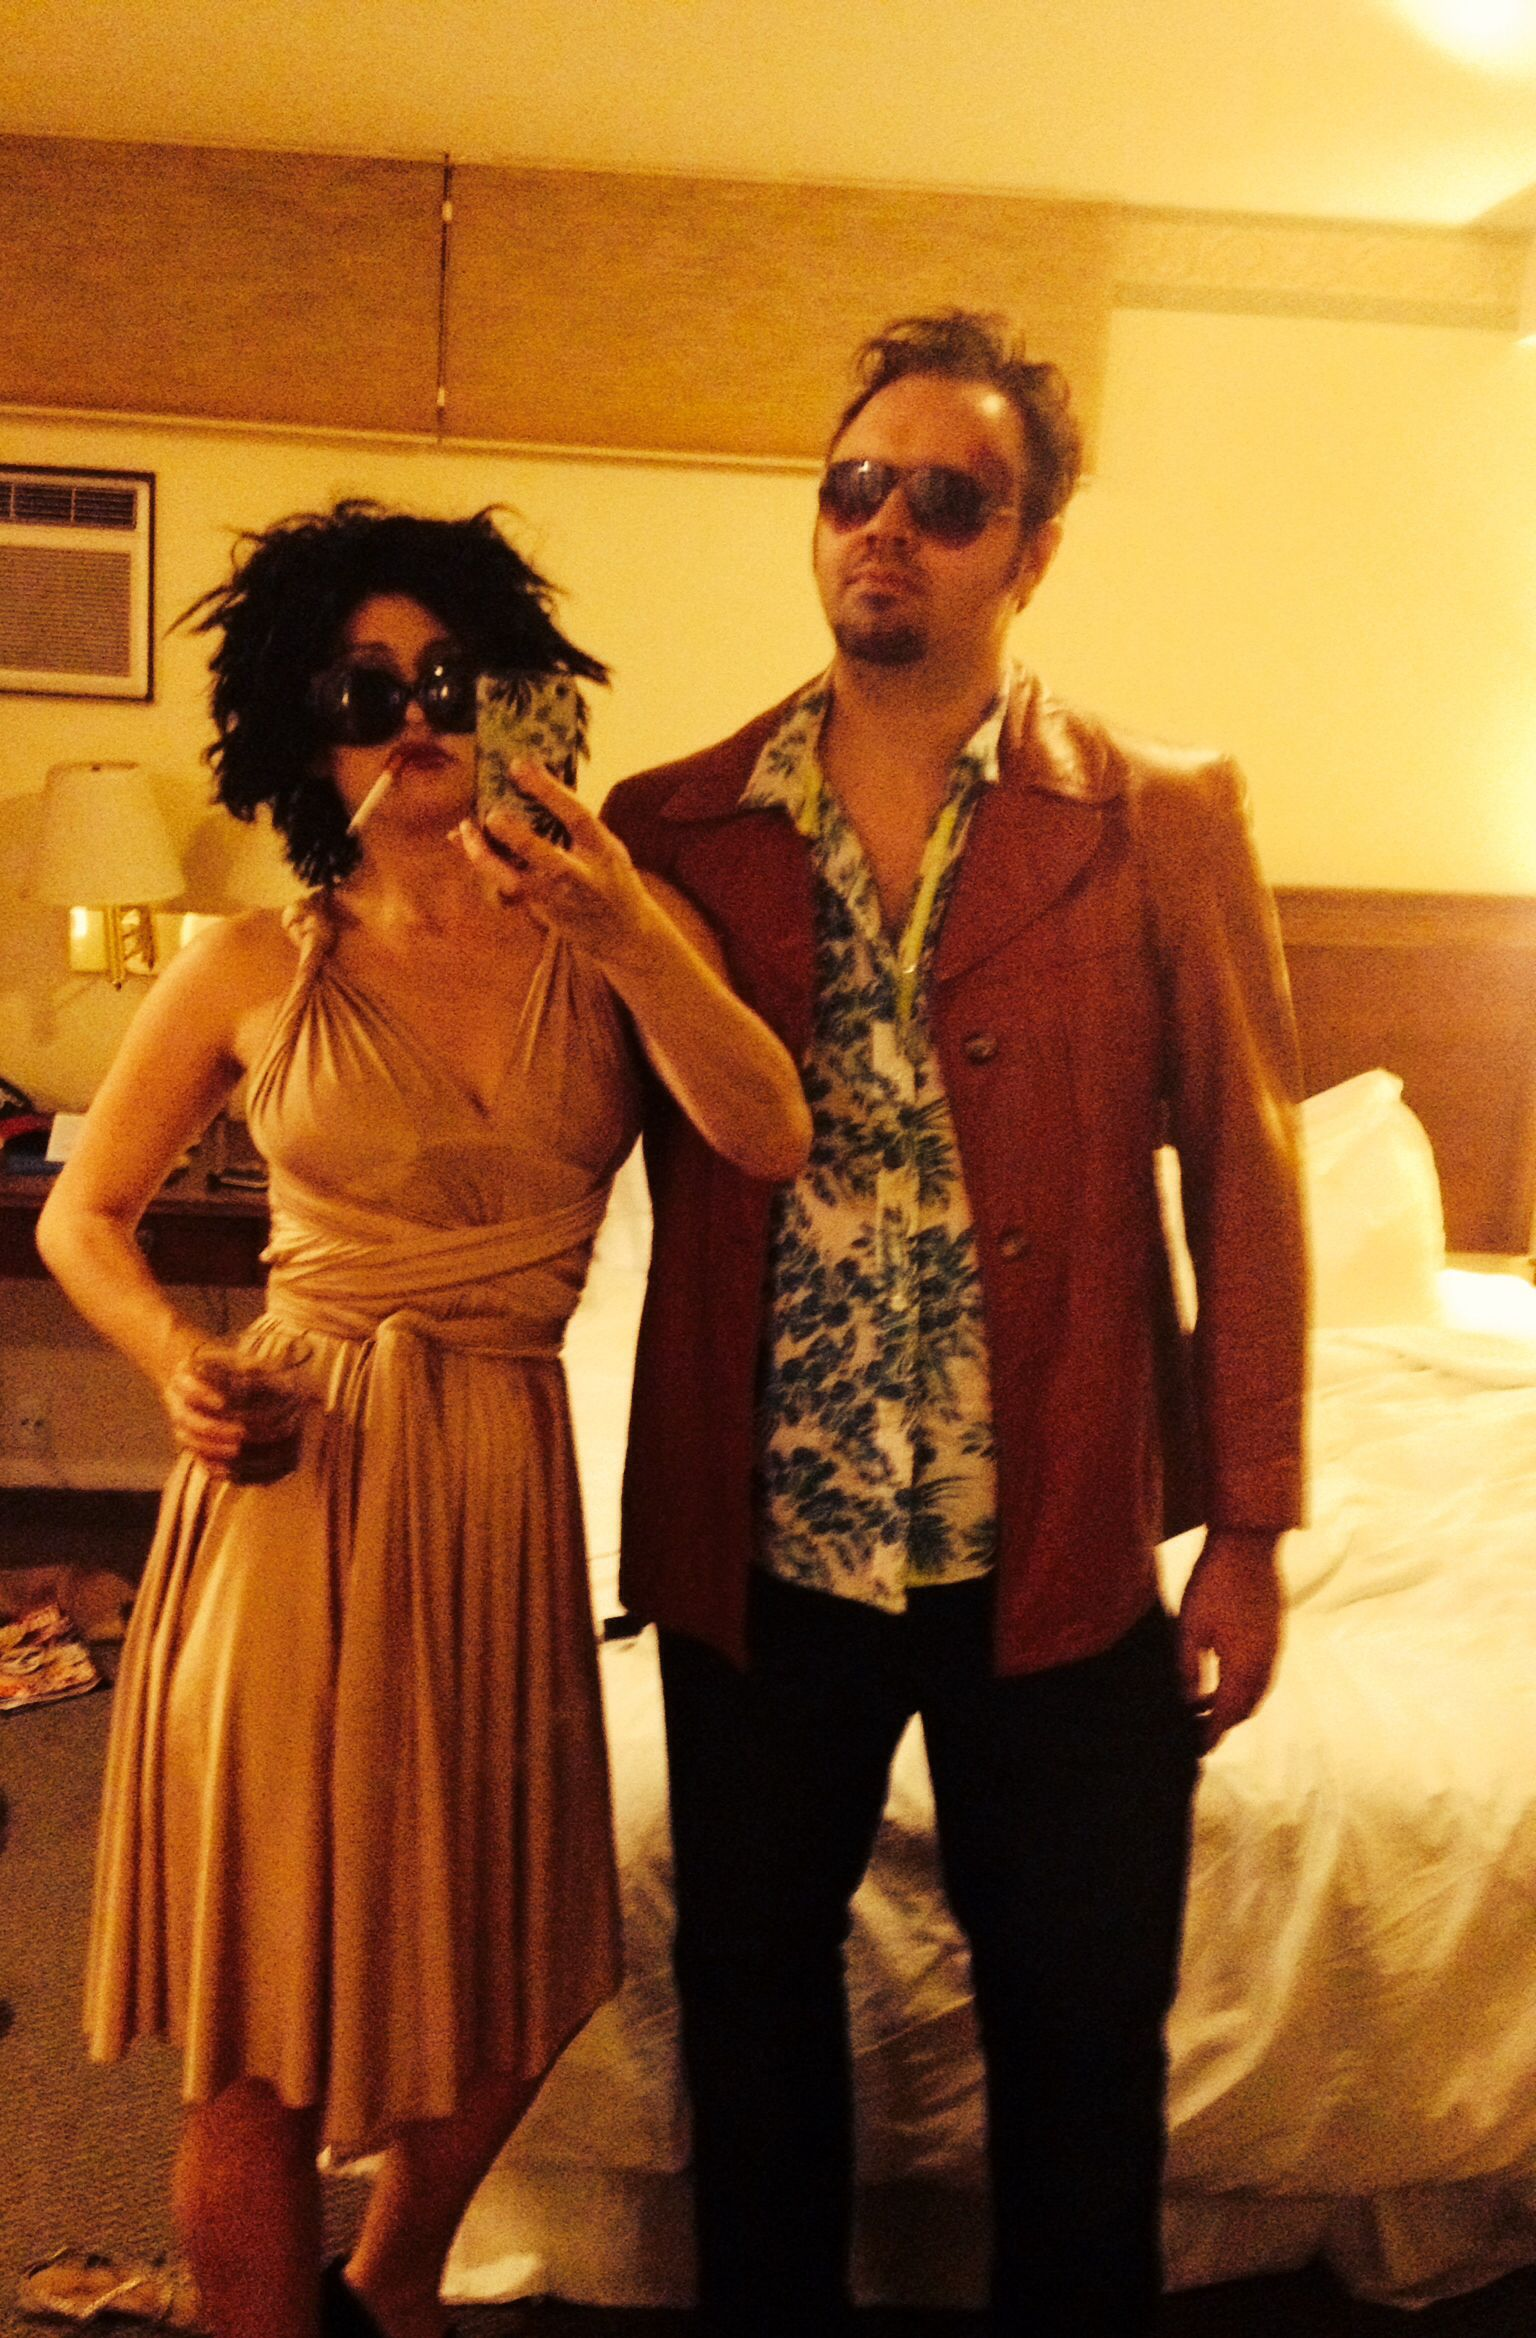 fight club couples costume marla helena bonham carter and tyler fight club couples costume marla helena bonham carter and tyler brad pitt